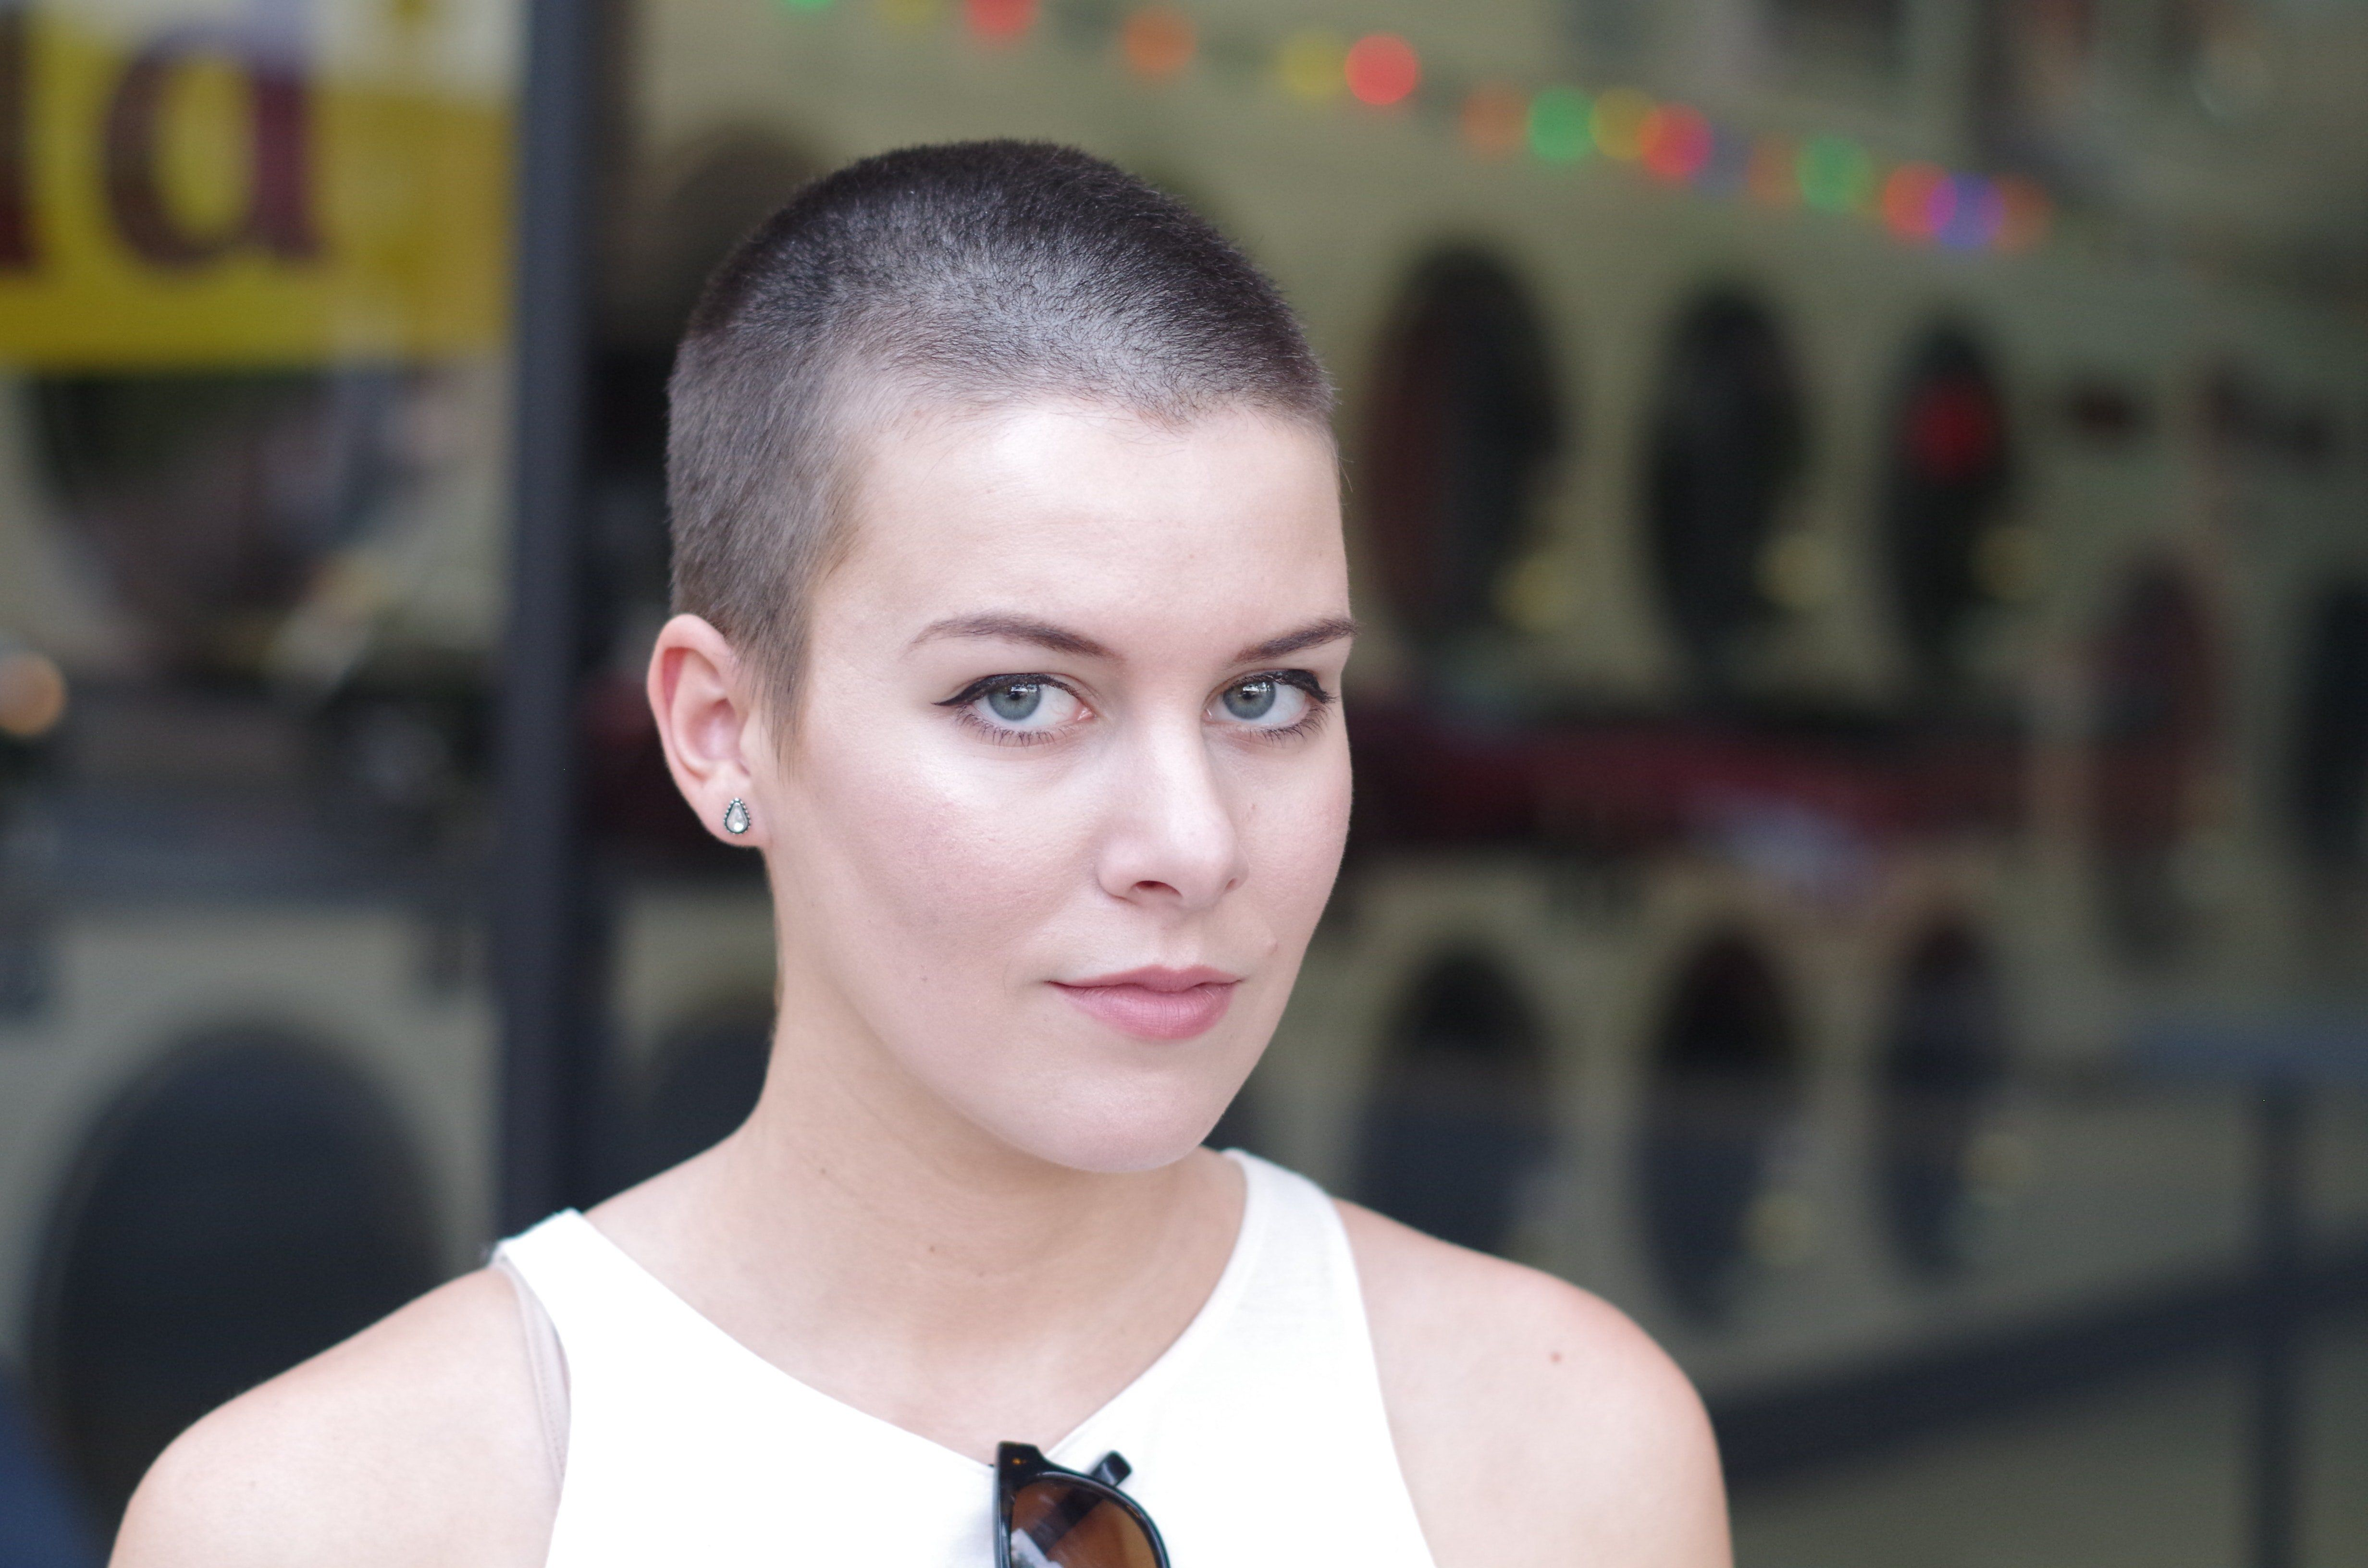 Athens reccomend Head her shaved she want